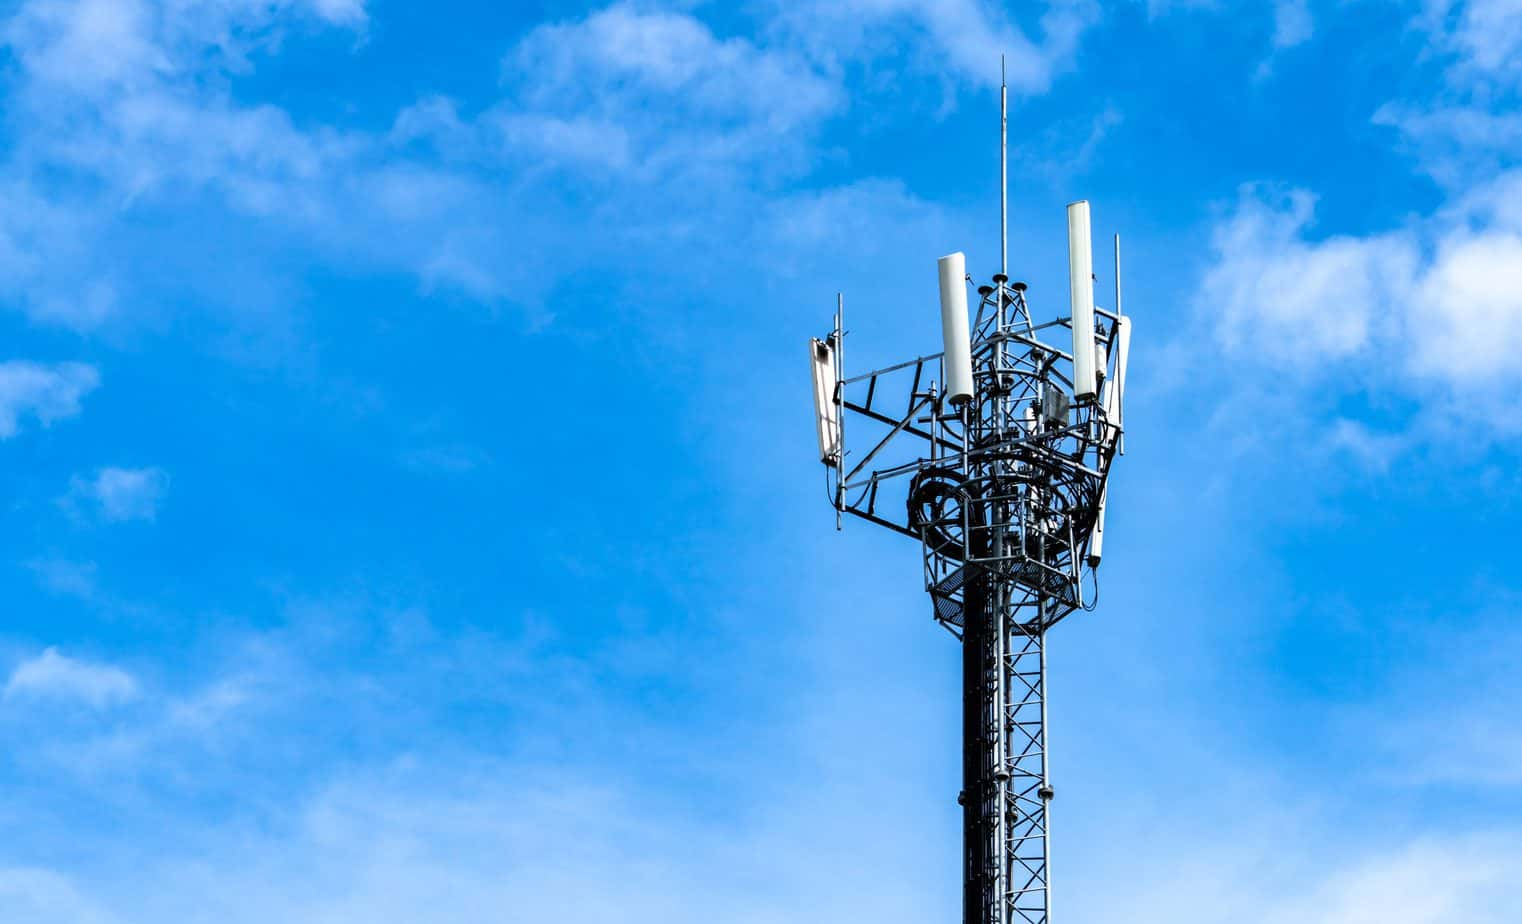 4g telecoms tower